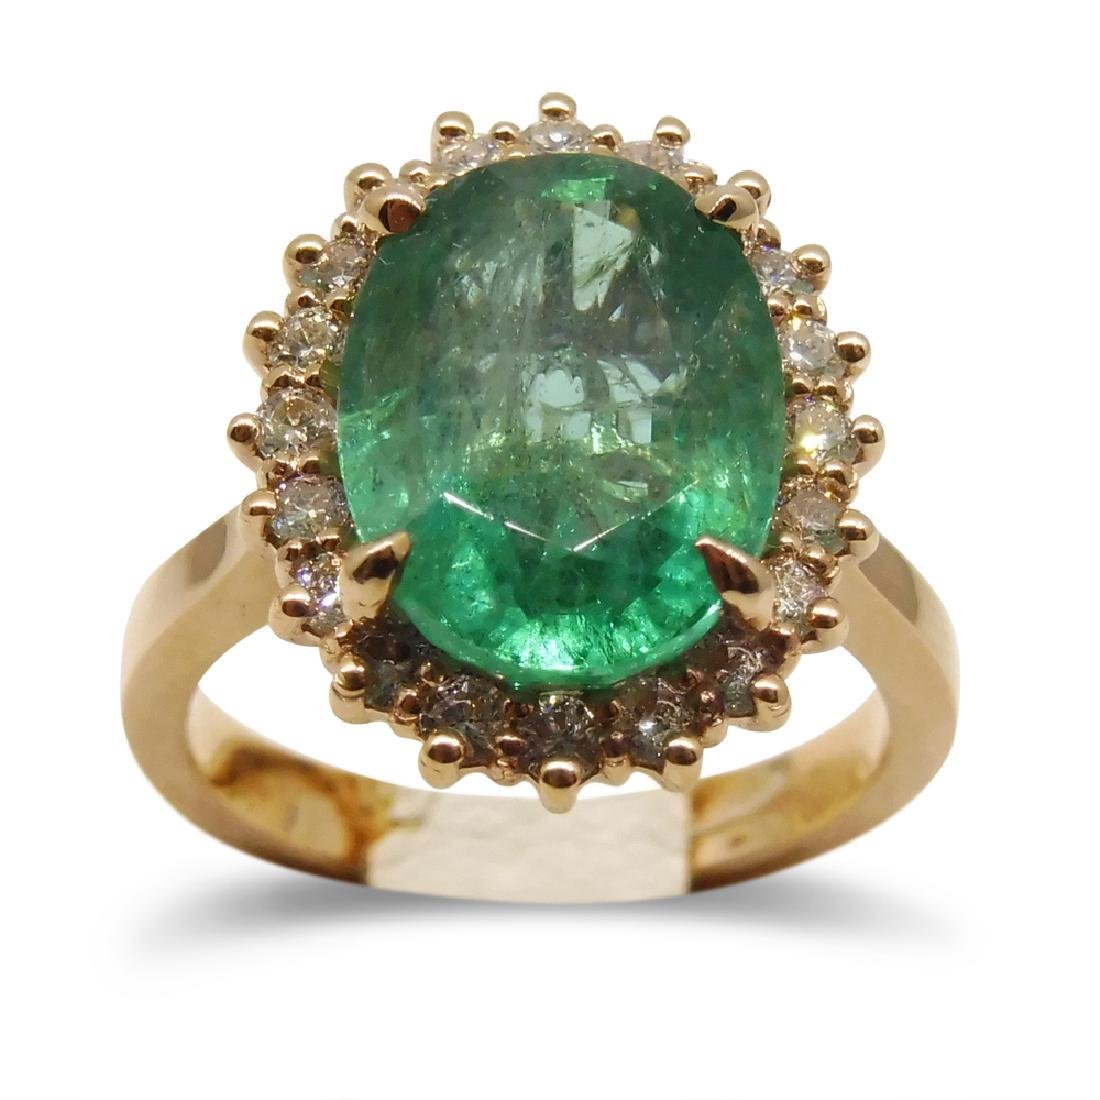 5.17ct. Emerald Ring in 14kt Pink/Rose Gold GS